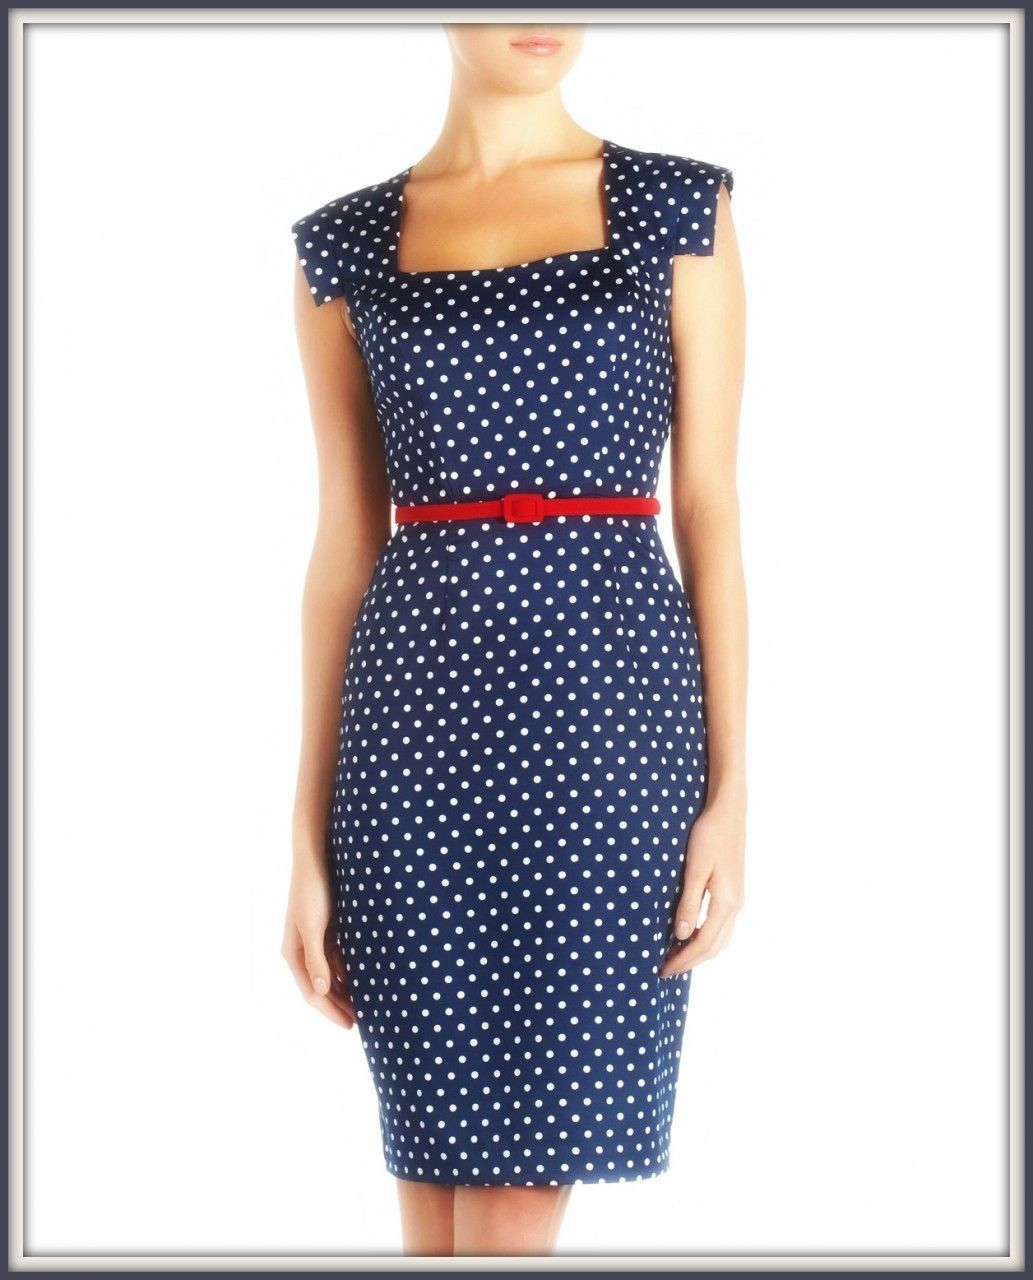 91b37f2800414 blue and white polka dot dress with red belt